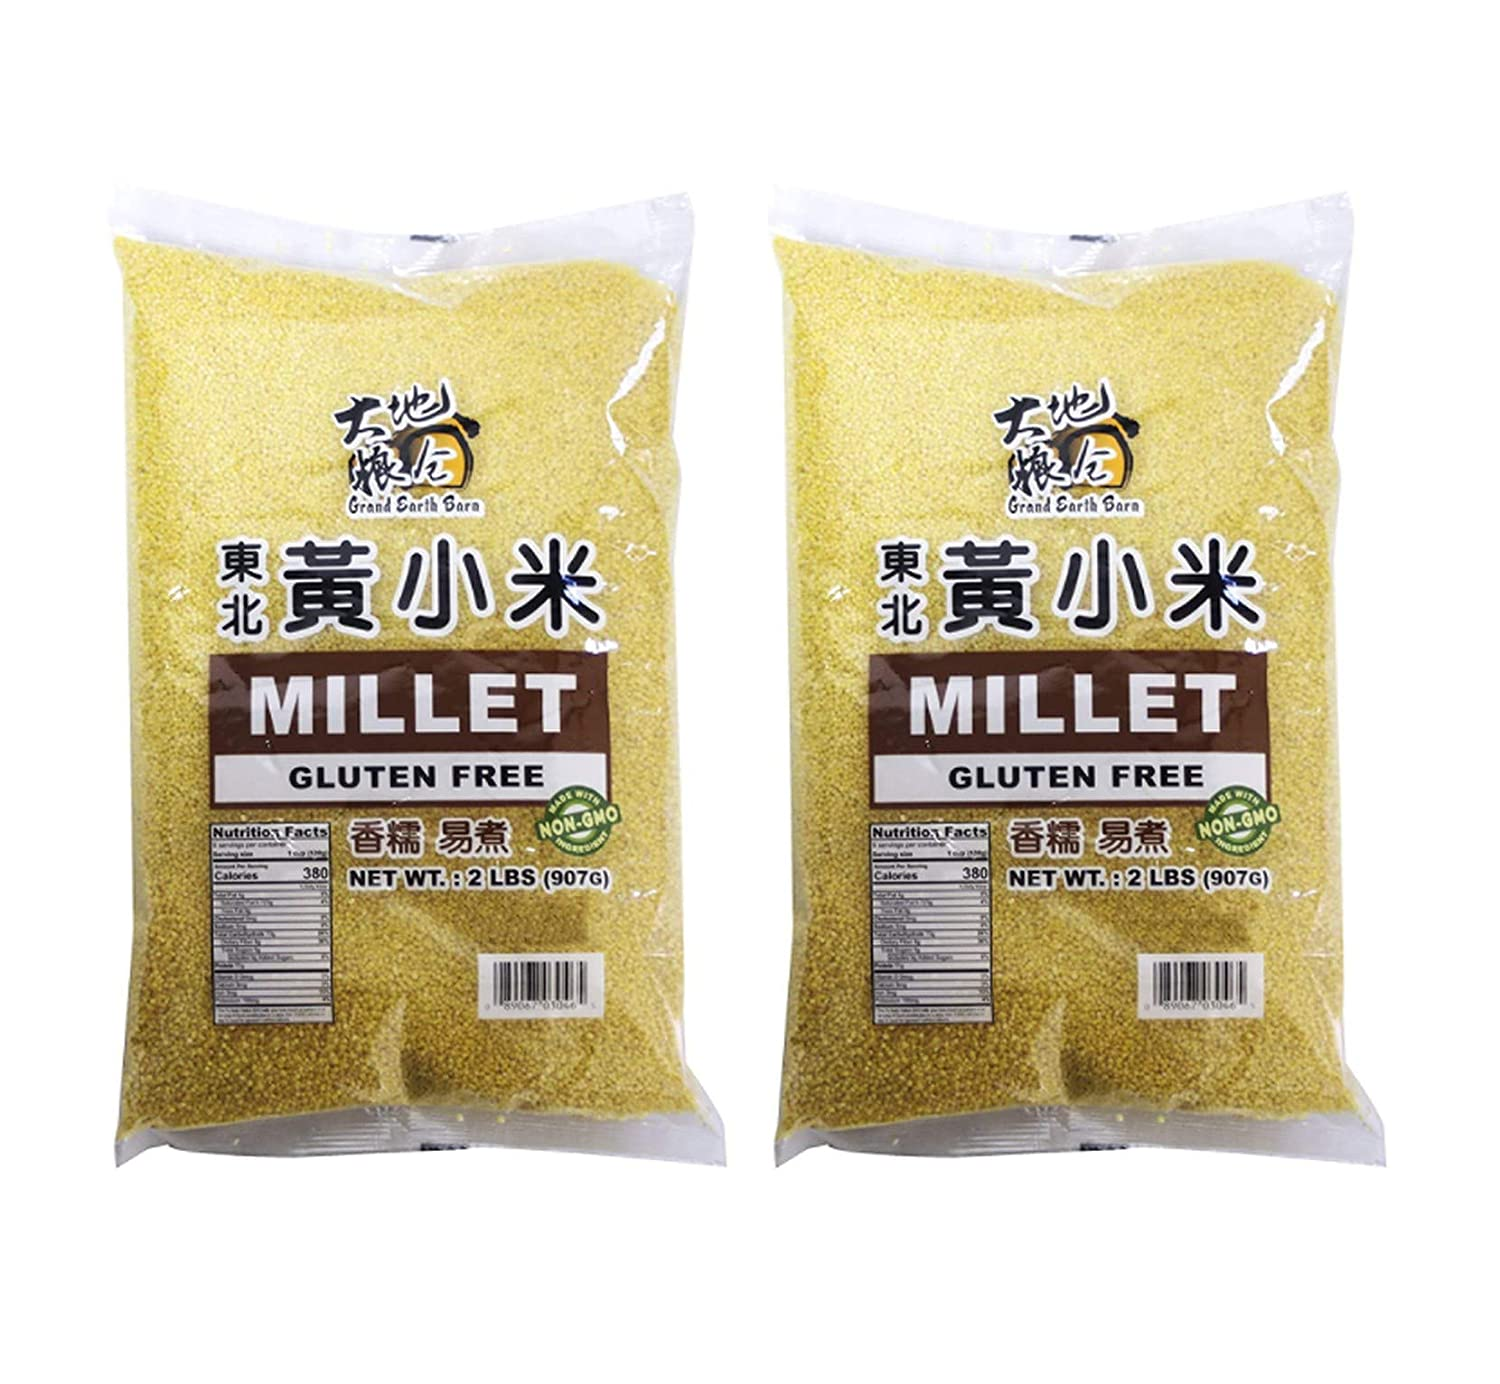 Grand Earth Barn Non GMO Gluten Very popular Free 2 Animer and price revision of Total Pack Millet 4l